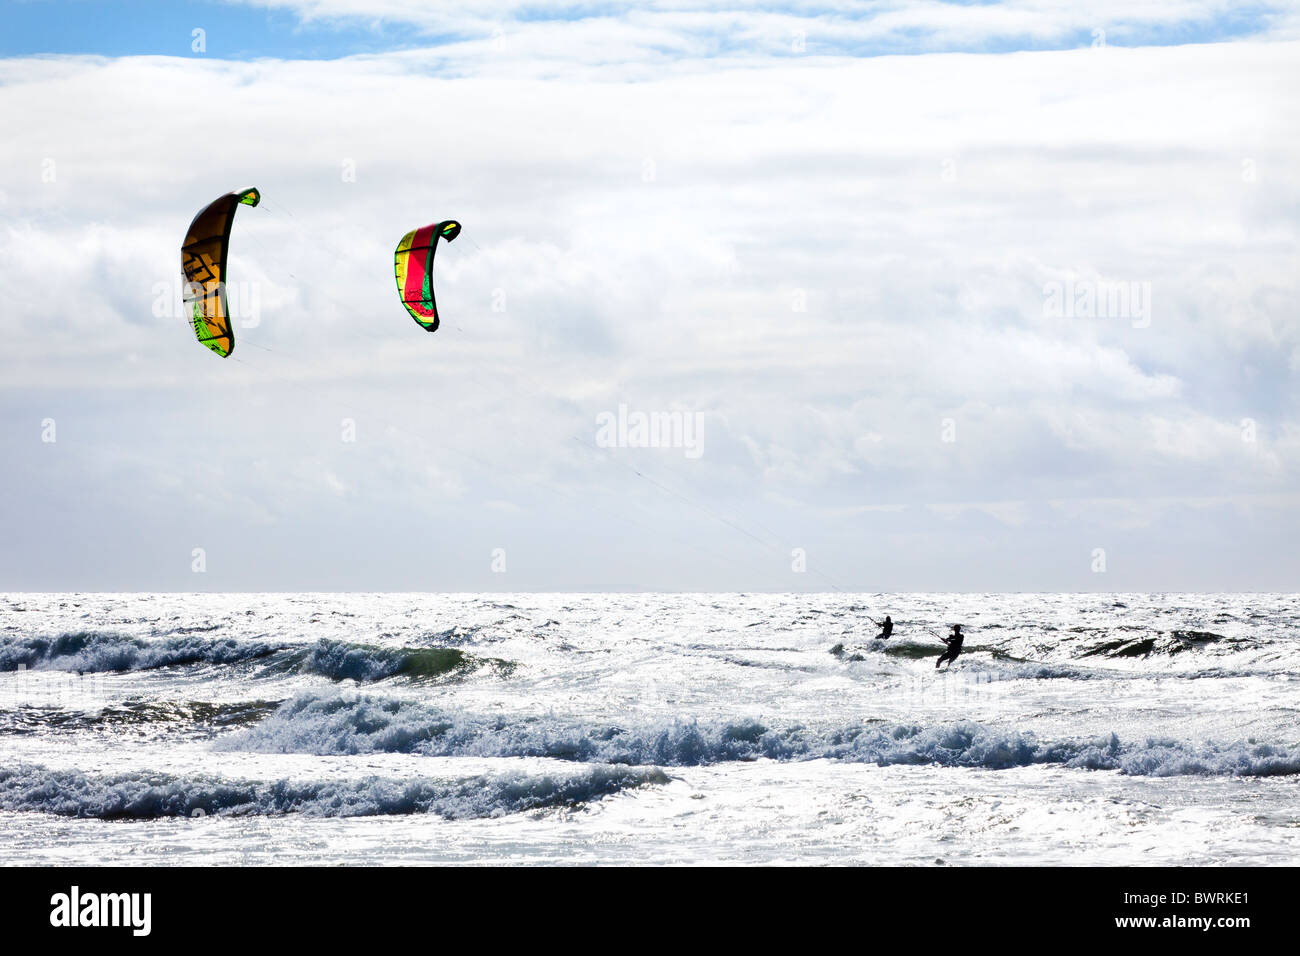 Kitesurfing at Machrihanish on the Kintyre Peninsula, Argyll & Bute, Scotland - Stock Image